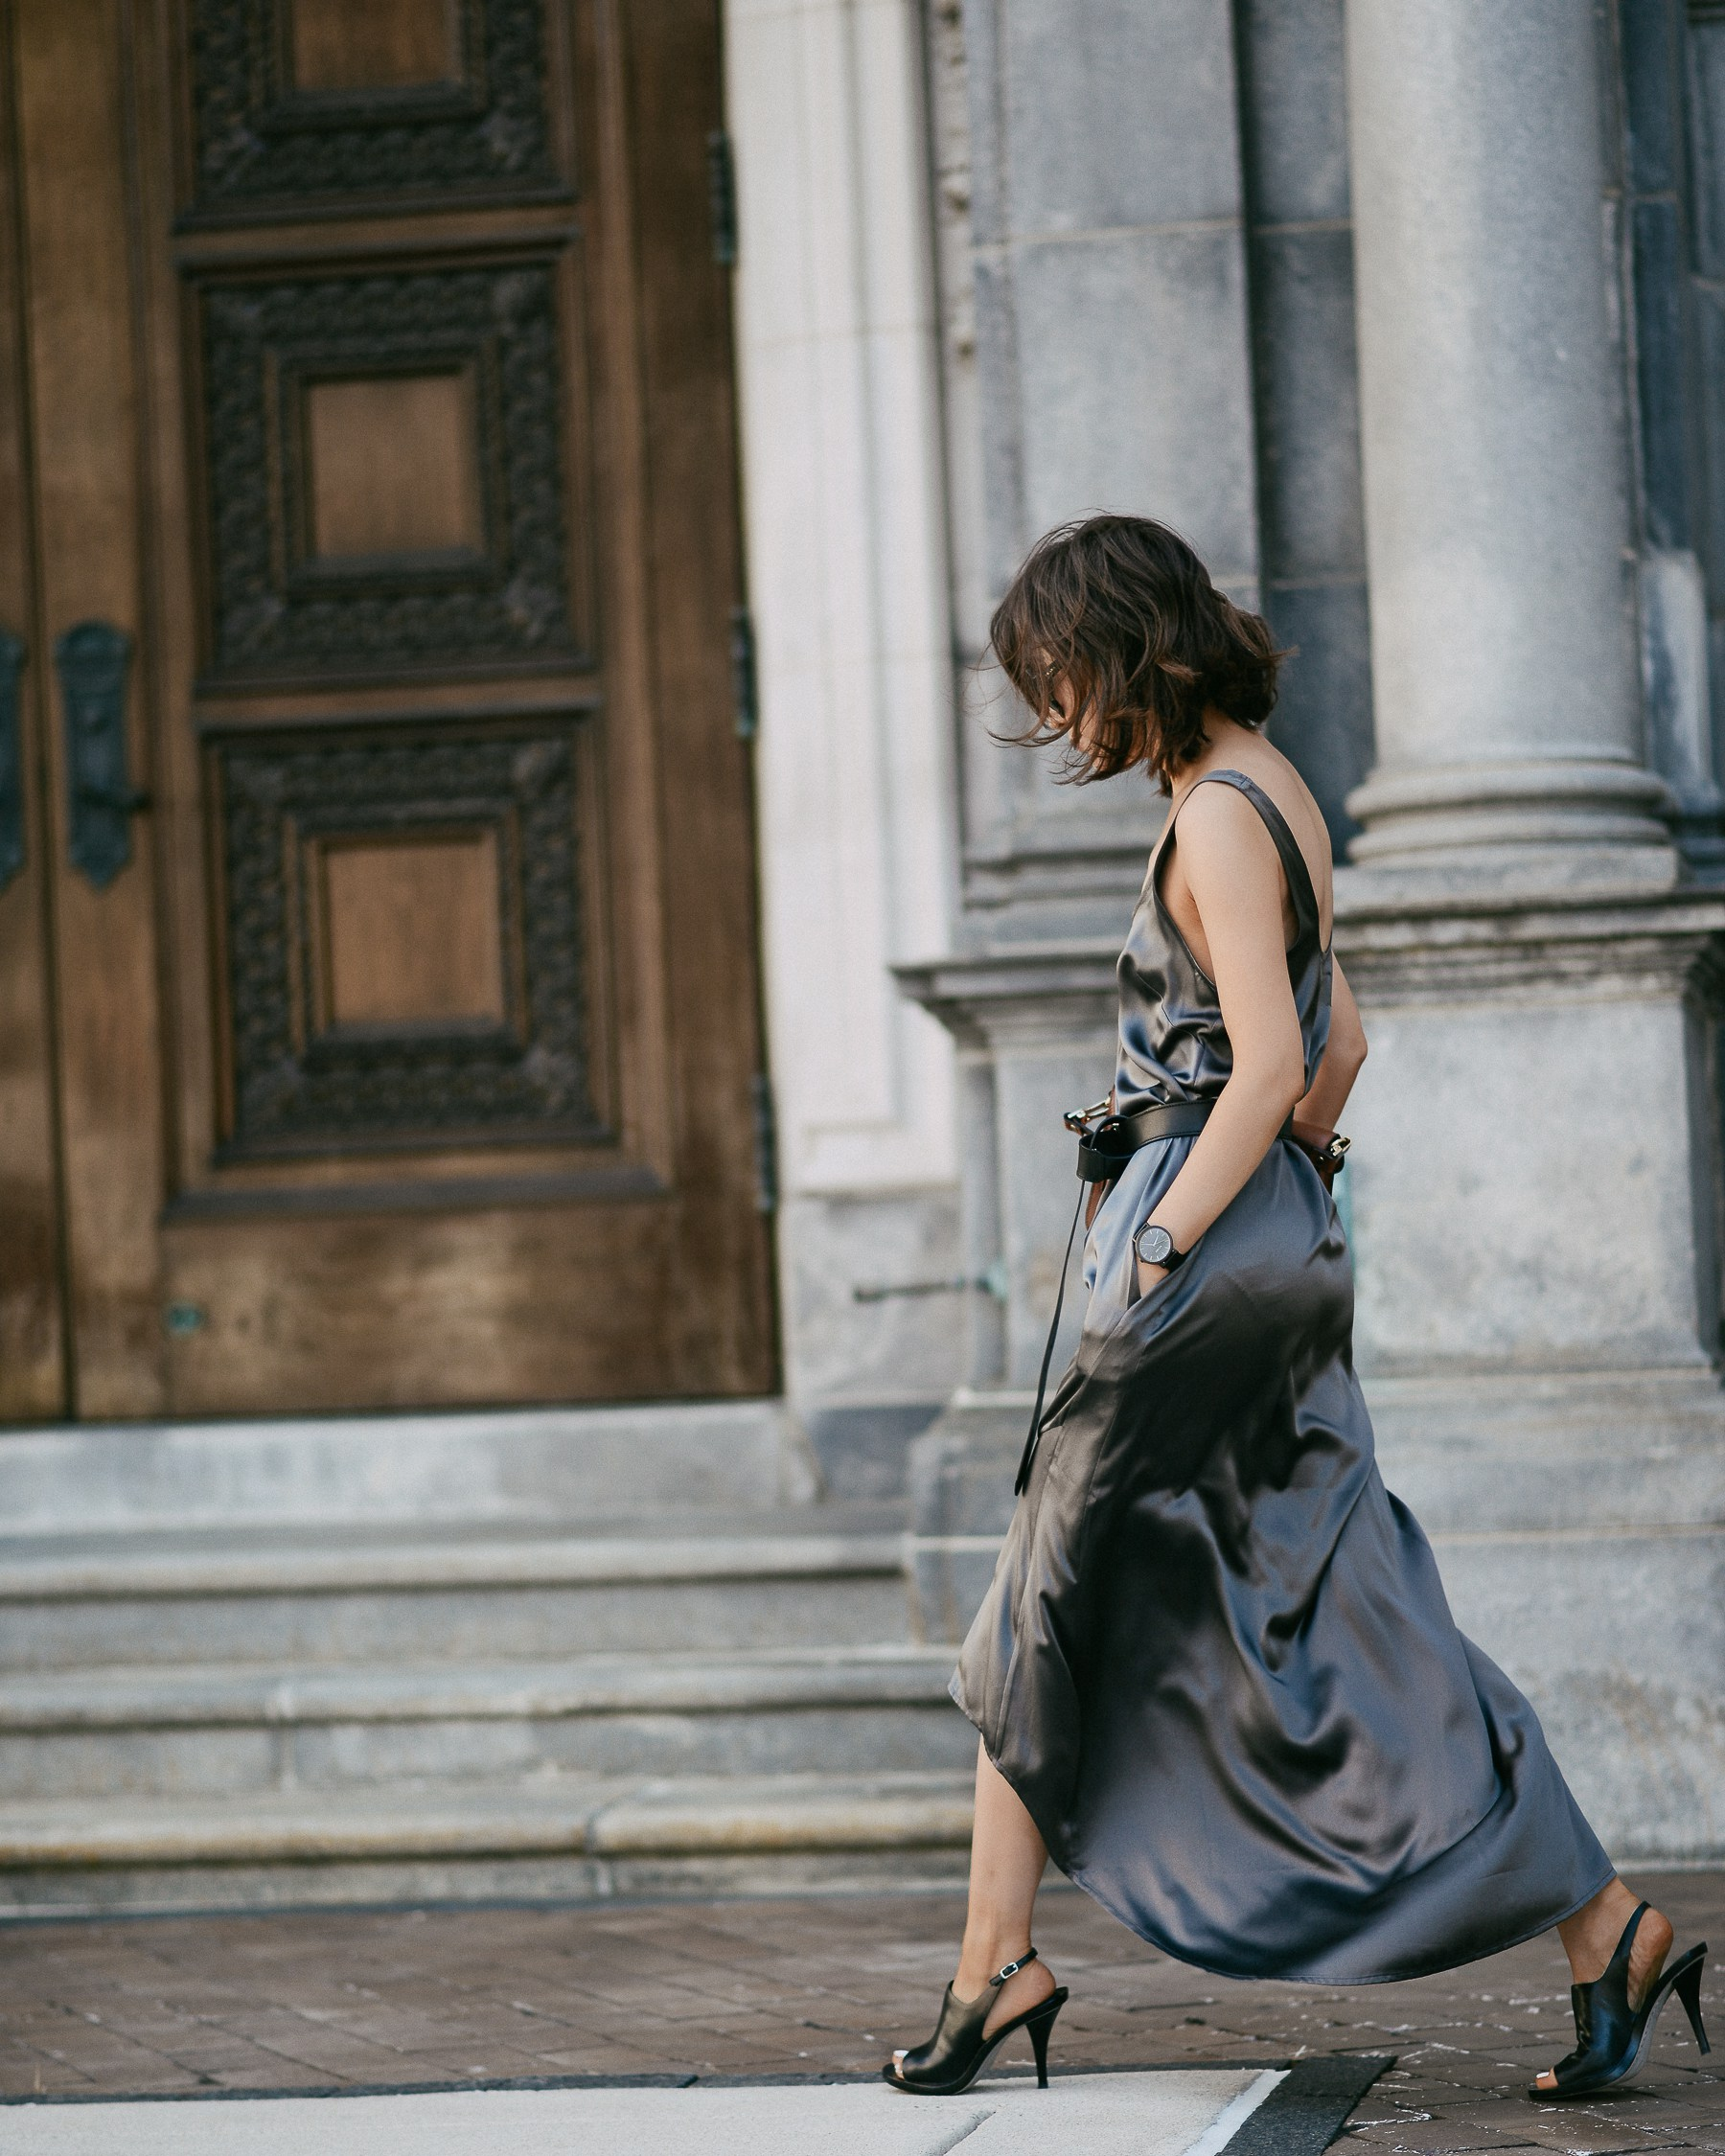 Satin dresses are the hottest new spring trend! Wear yours with a pair of mules and sunglasses to steal this gorgeously sophisticated style which will show off your figure and curves! Via Diana Z Wang. Dress: Brochu Walker, Shoes: Alexandre Wang.